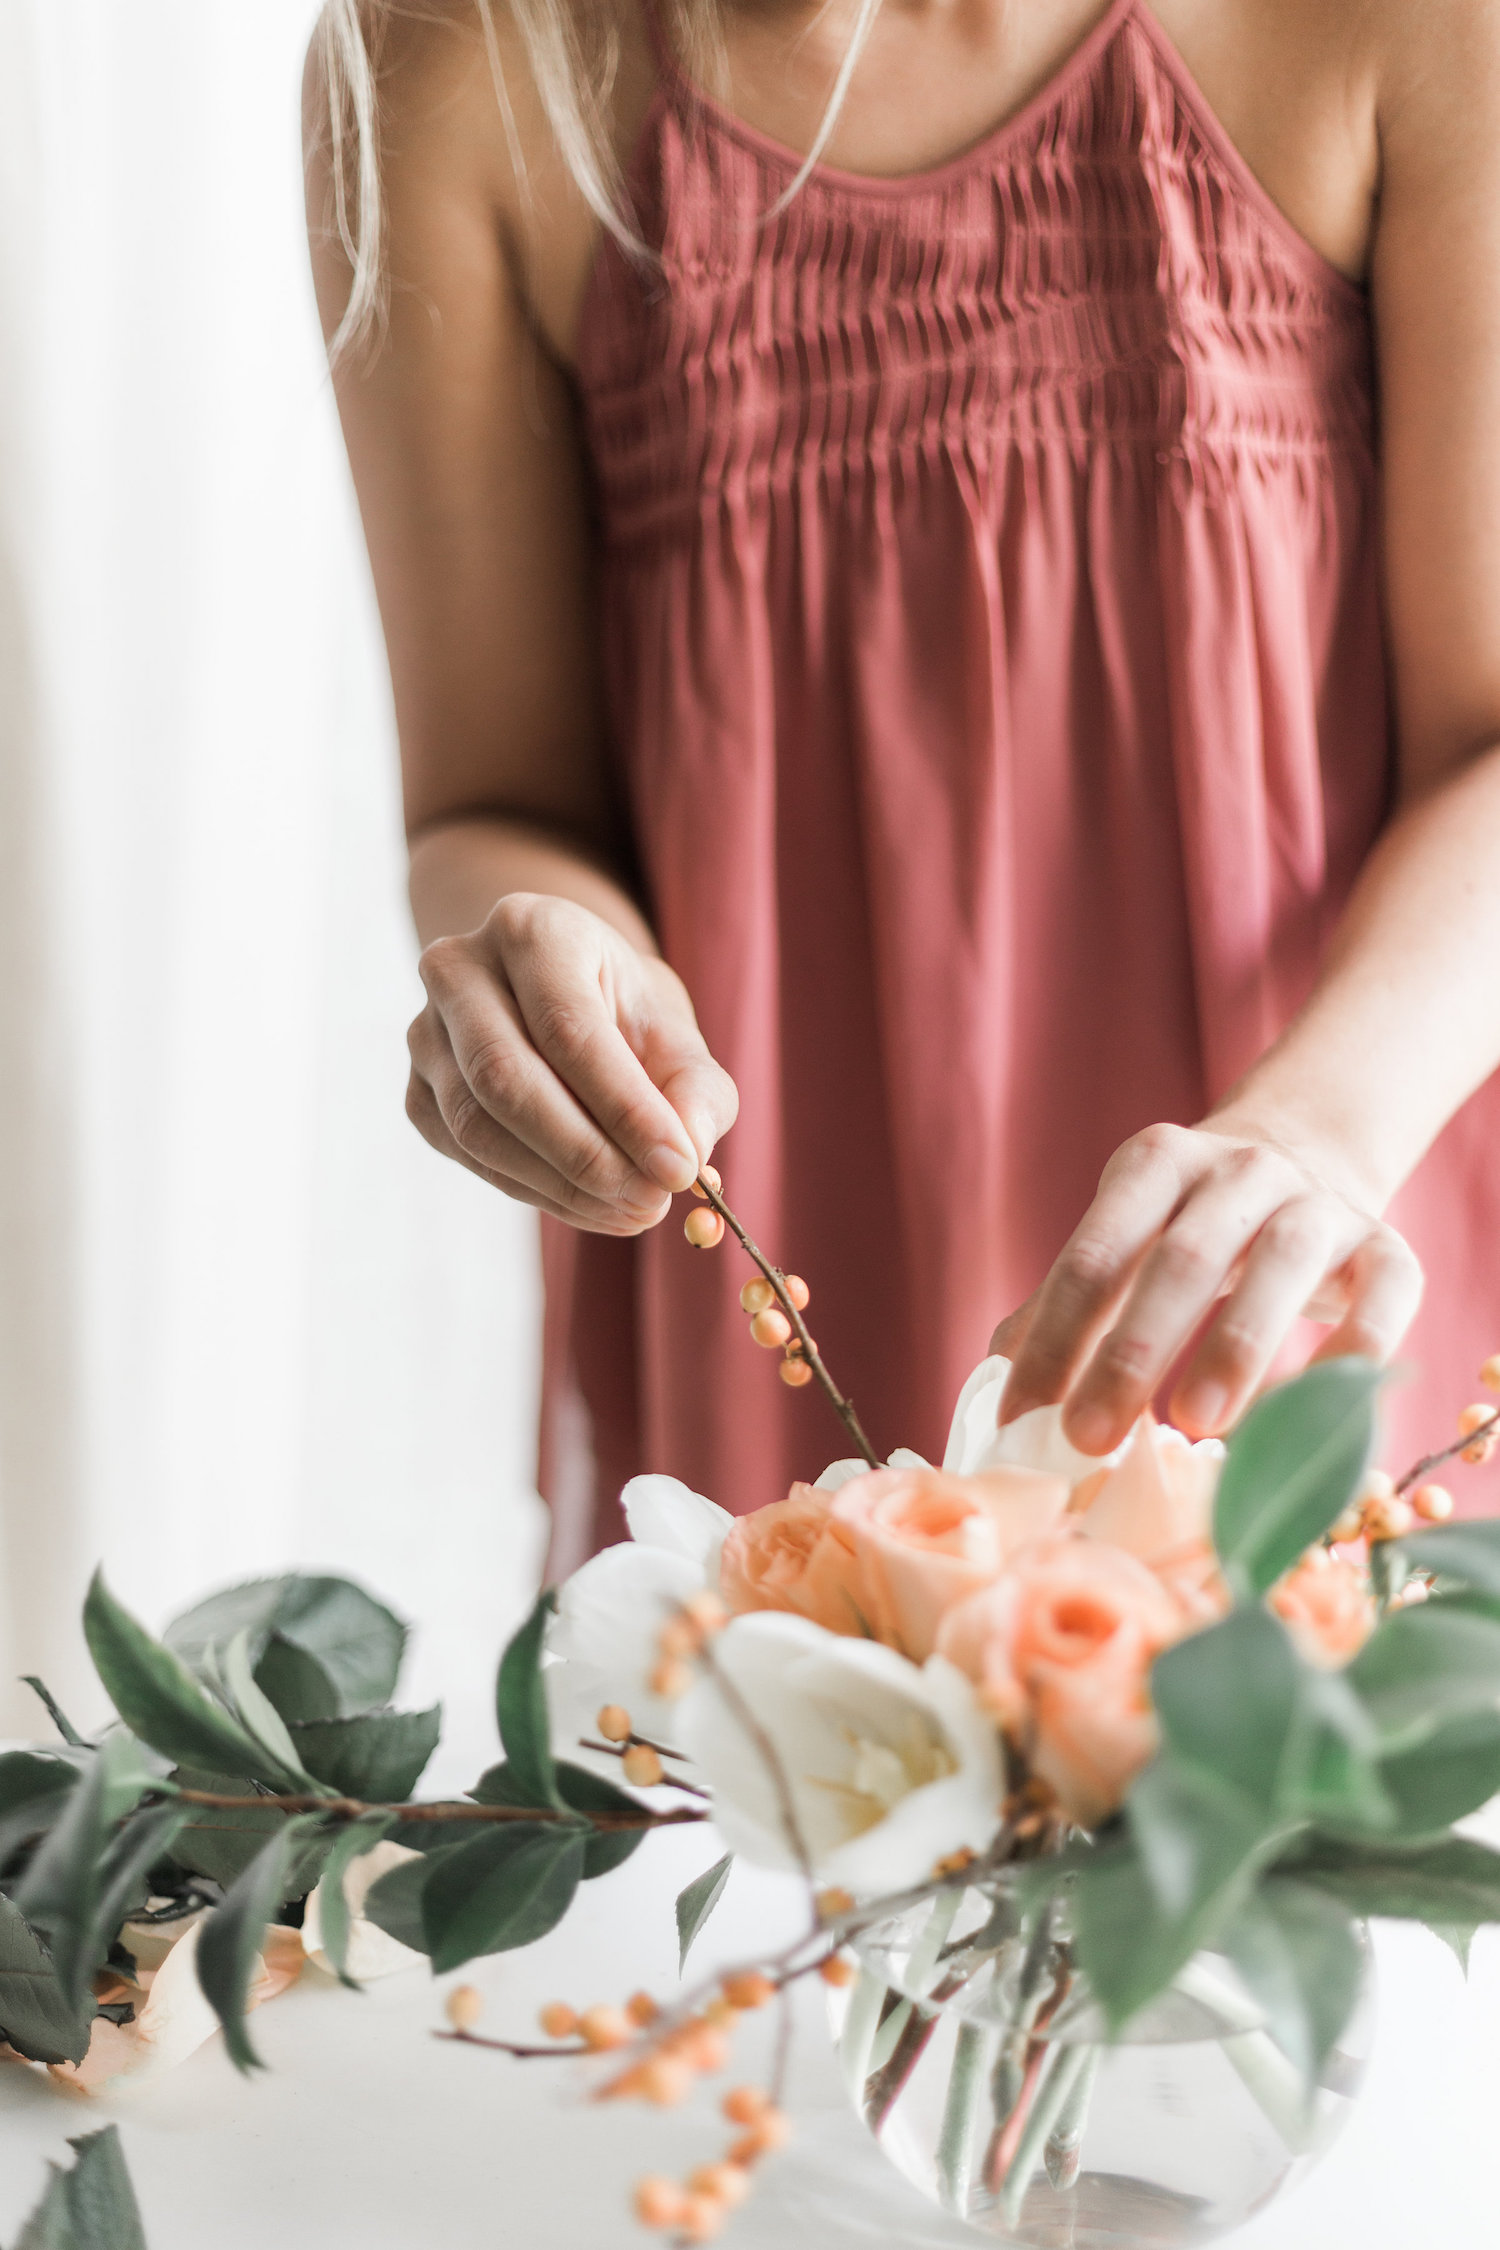 Tips for taking a flower arrangement from basic to festive this season | A Fabulous Fete